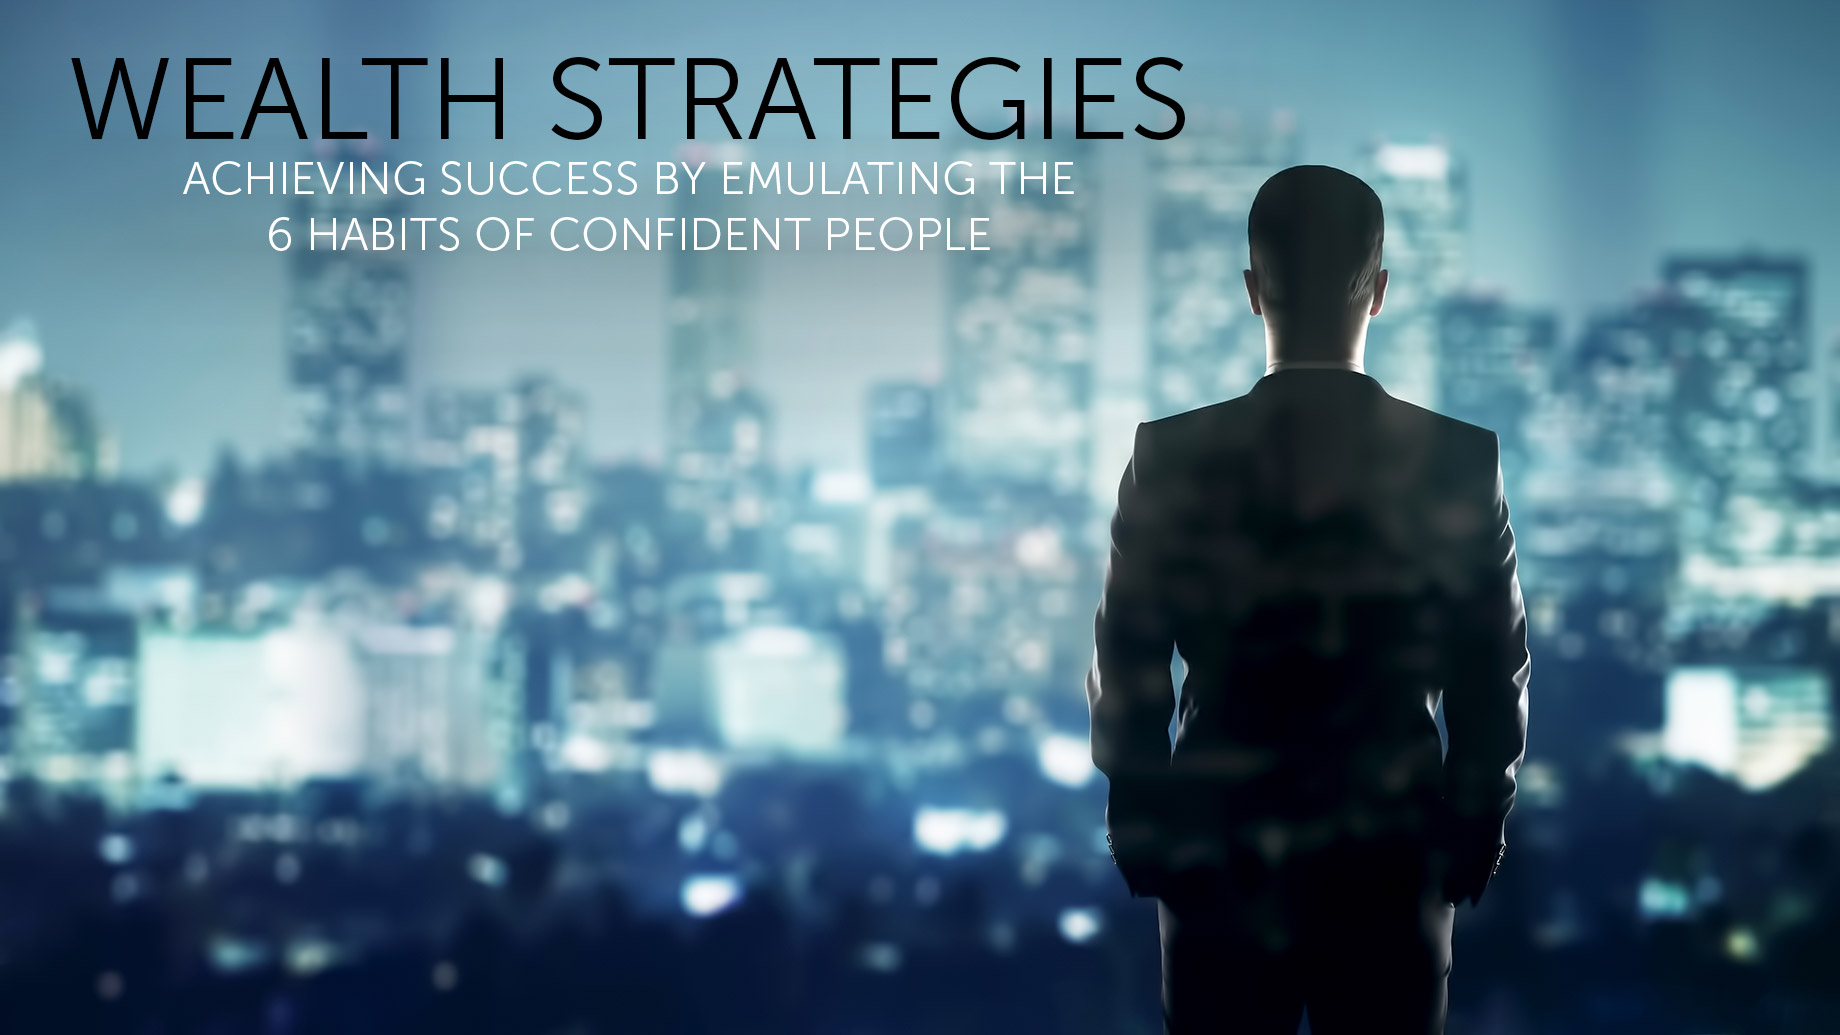 Wealth Strategies - Achieving Success By Emulating The 6 Habits Of Confident People